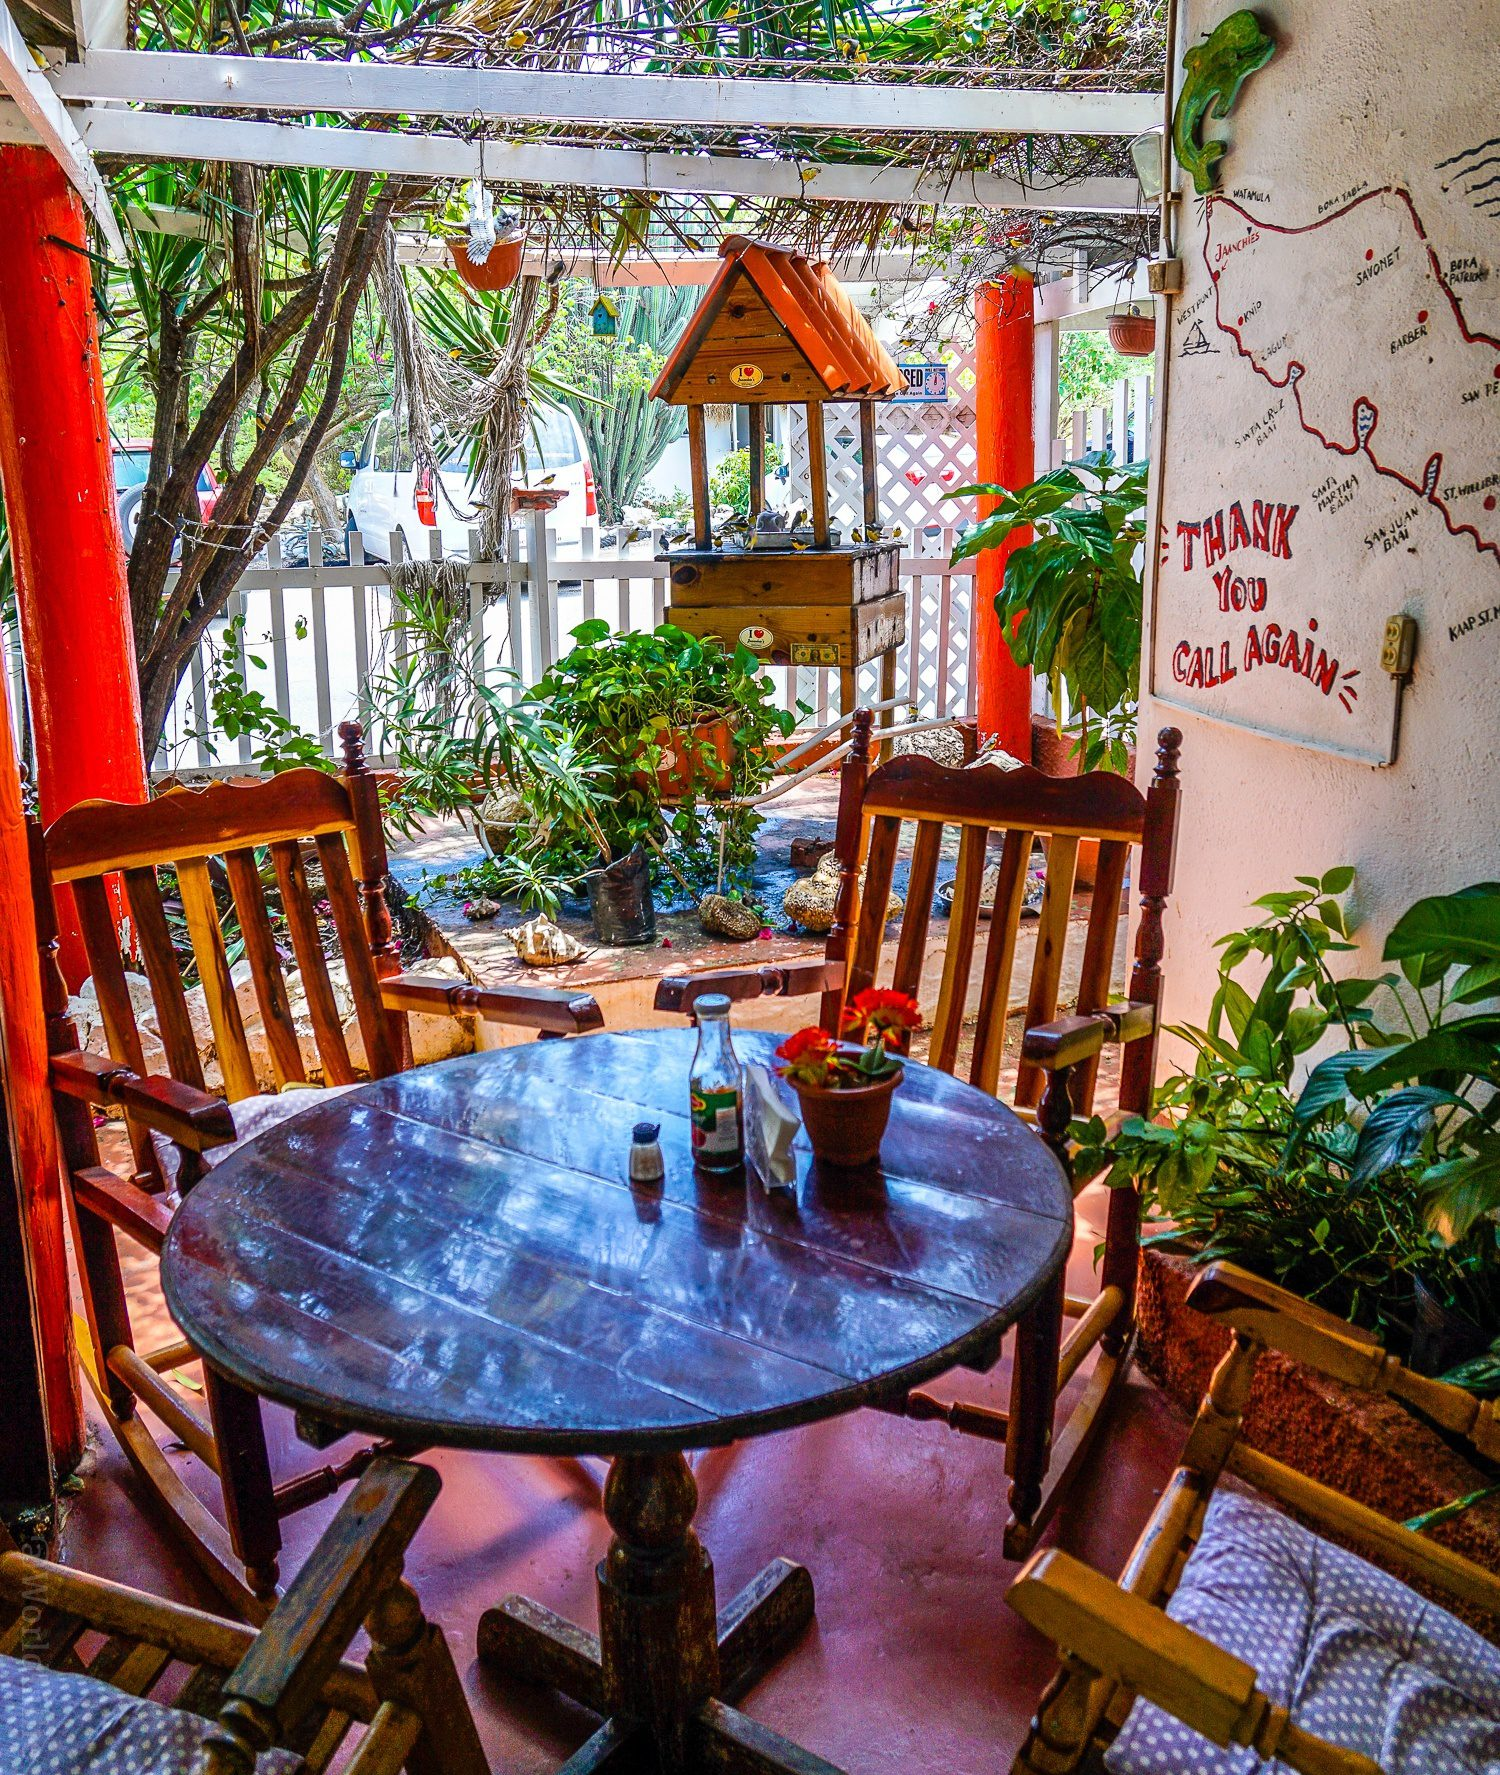 What to do in Curacao: 10 Tips on the beautiful Caribbean island, perfect for vacation travel, good food and hotels, and a fun trip, as seen in gorgeous photos! Jaanchies Restaurant is a must-see in Curaçao!